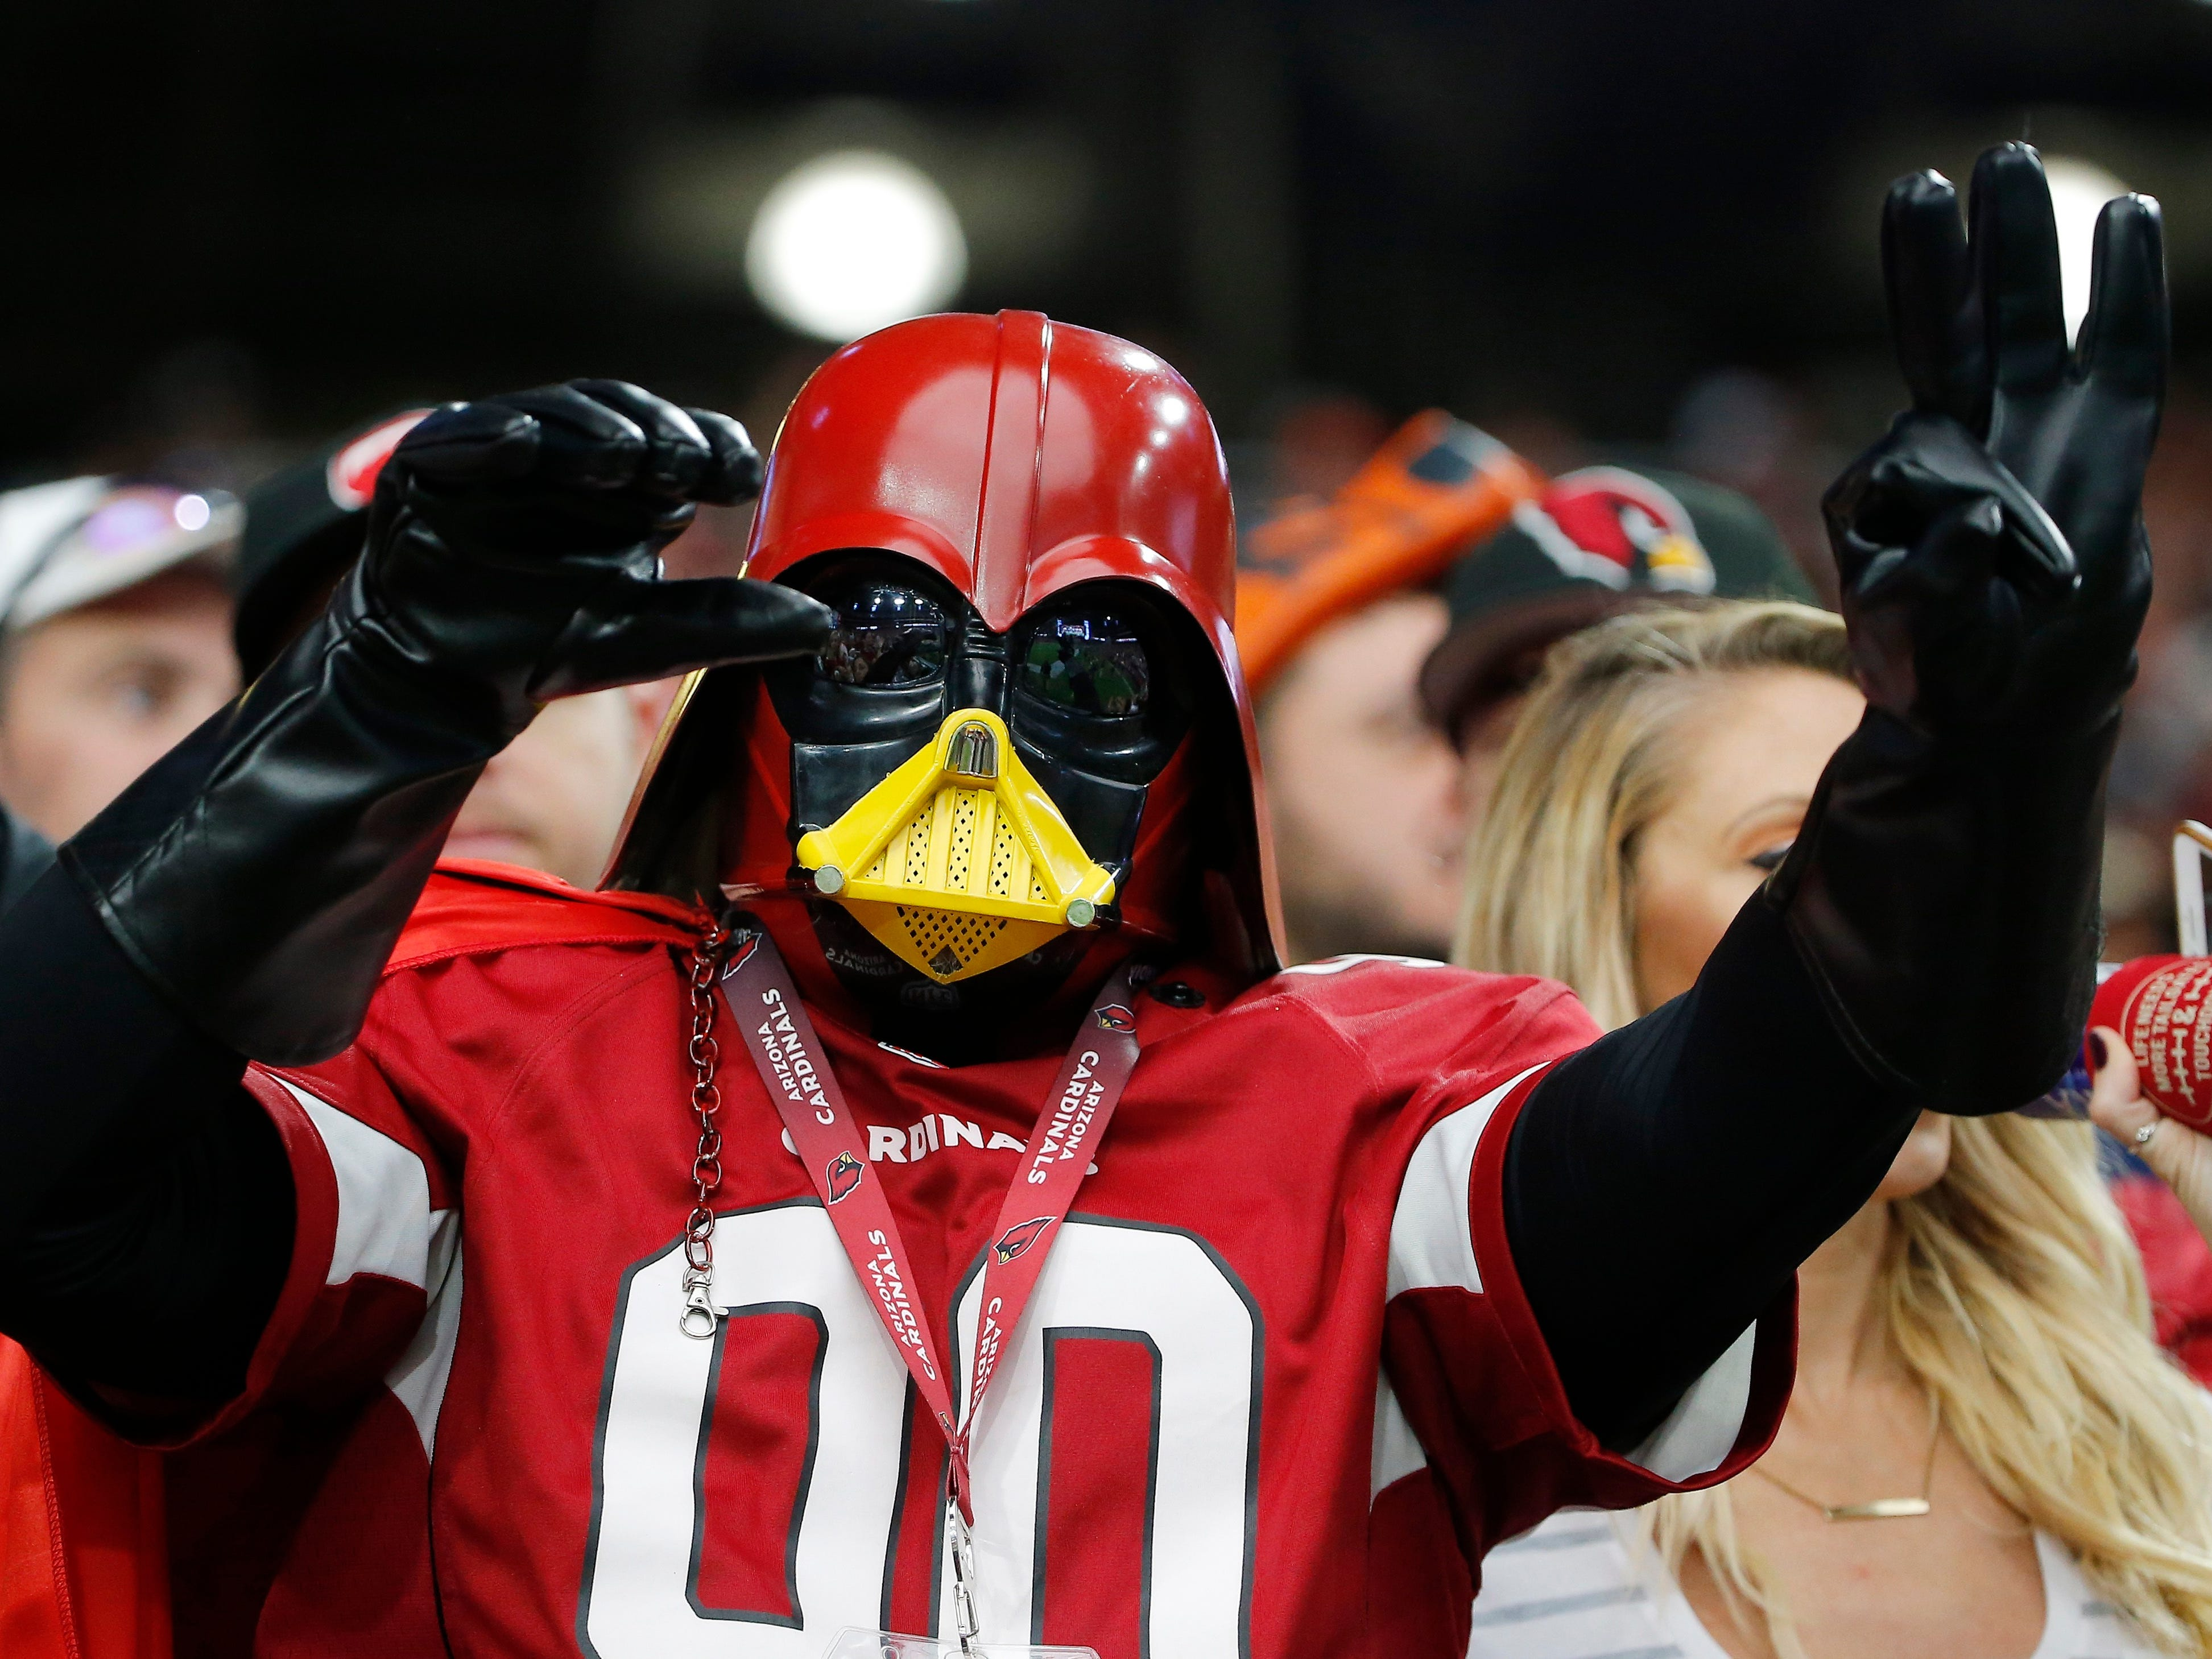 An Arizona Cardinals fan cheers on his team during the second half against the Chicago Bears.